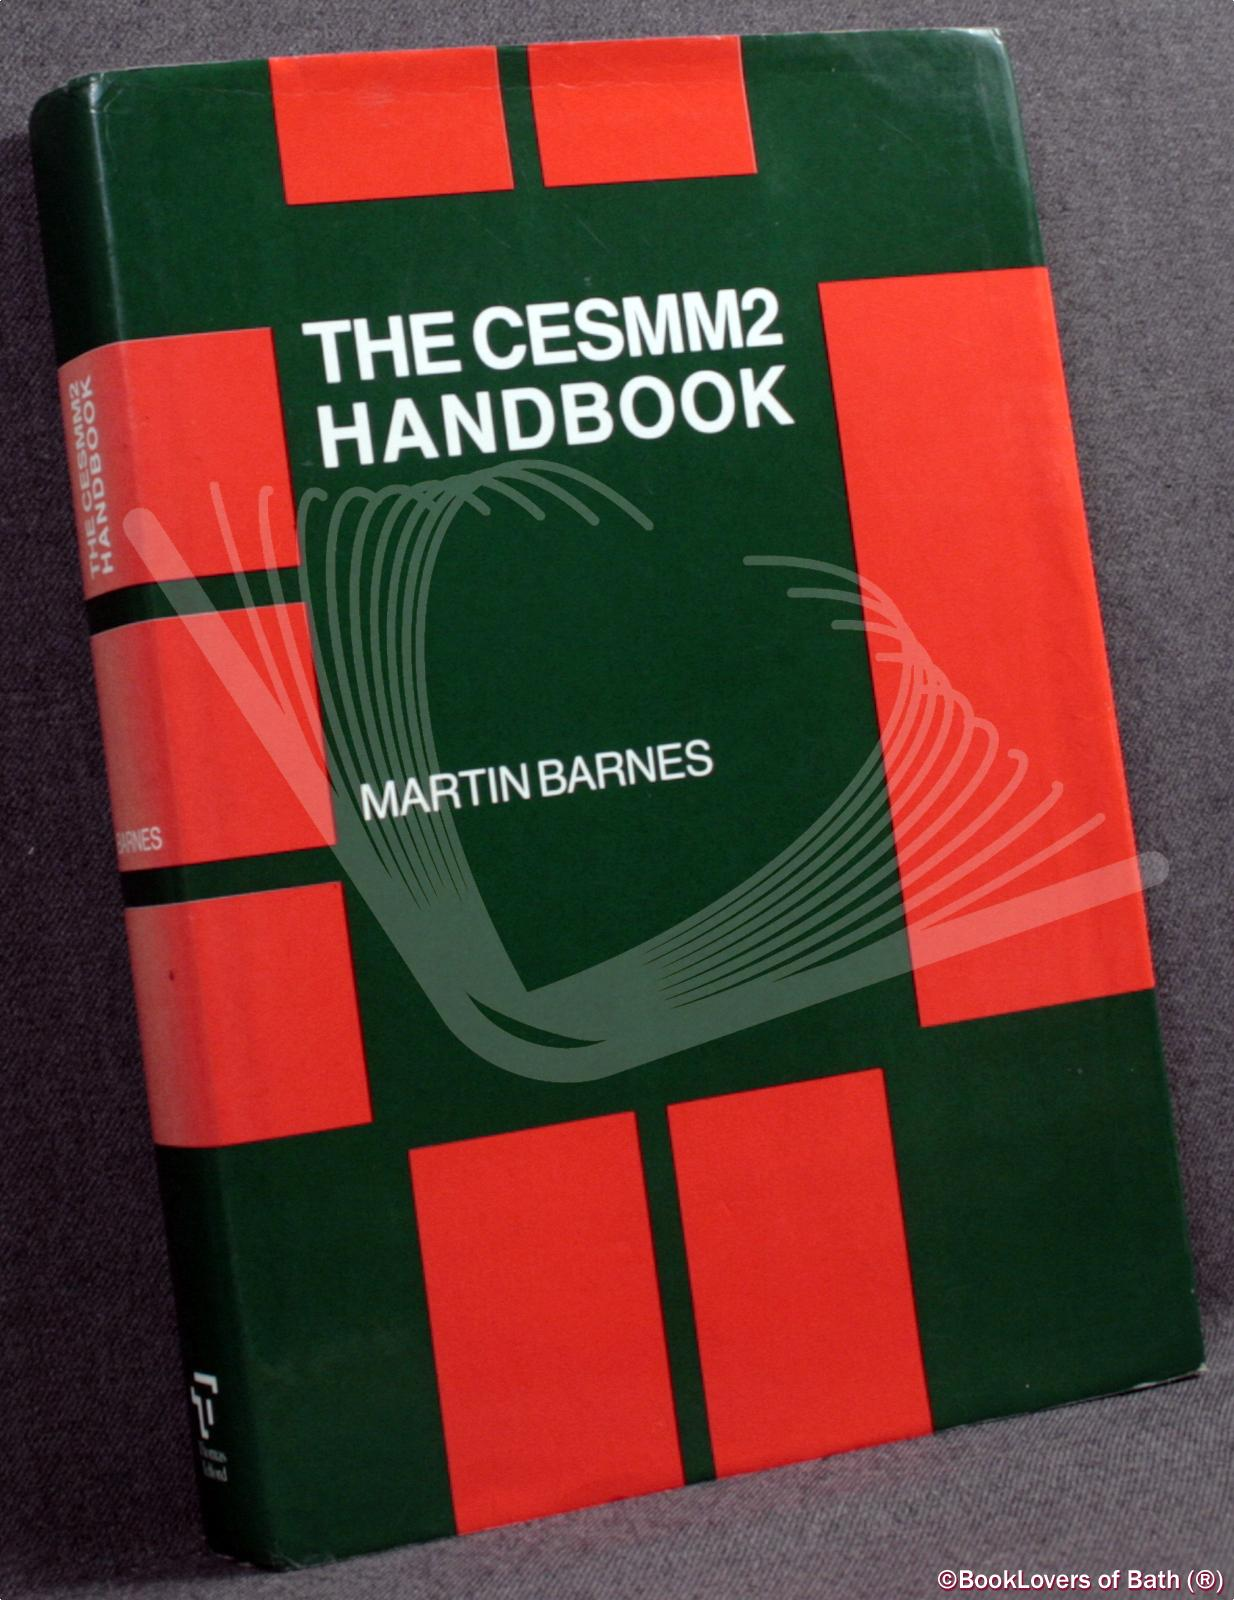 The CESMM2 Handbook: A Guide to the Financial Control of Contracts Using the Civil Engineering Standard Method of Measurement - Martin Barnes